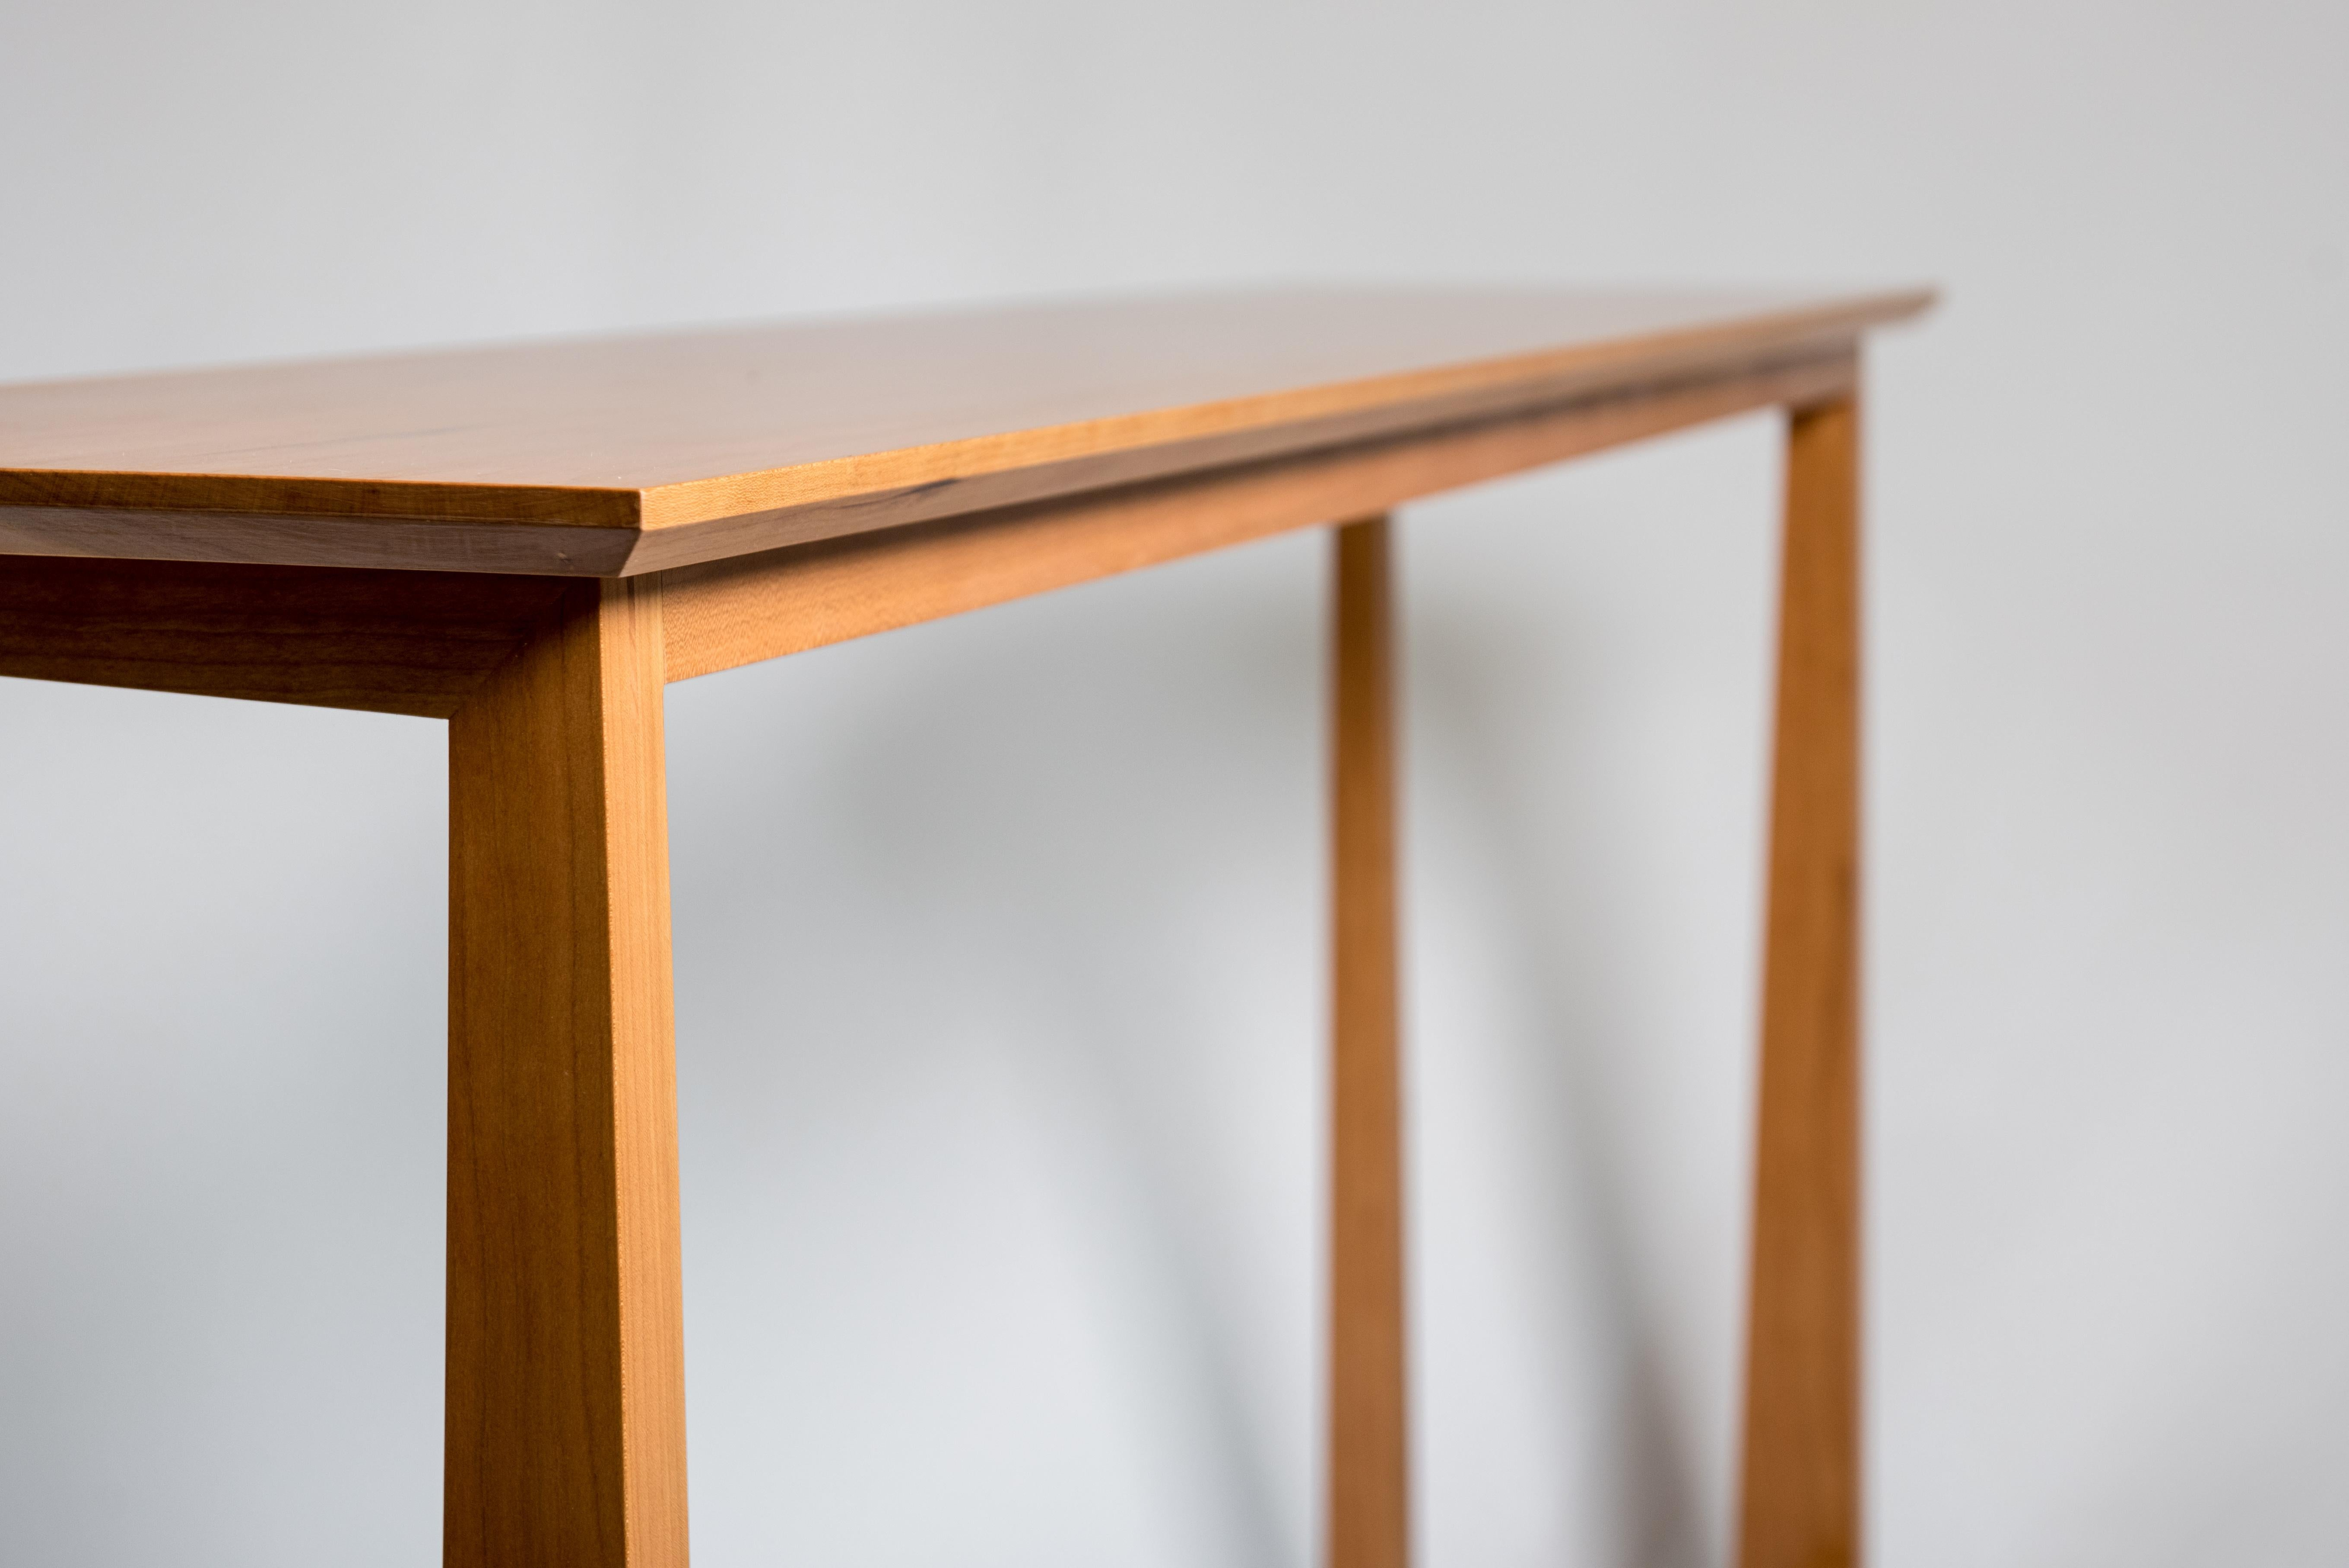 Charmant Tall Narrow Modern Cherry Westport Pub Table With Splined Miters And Trestle